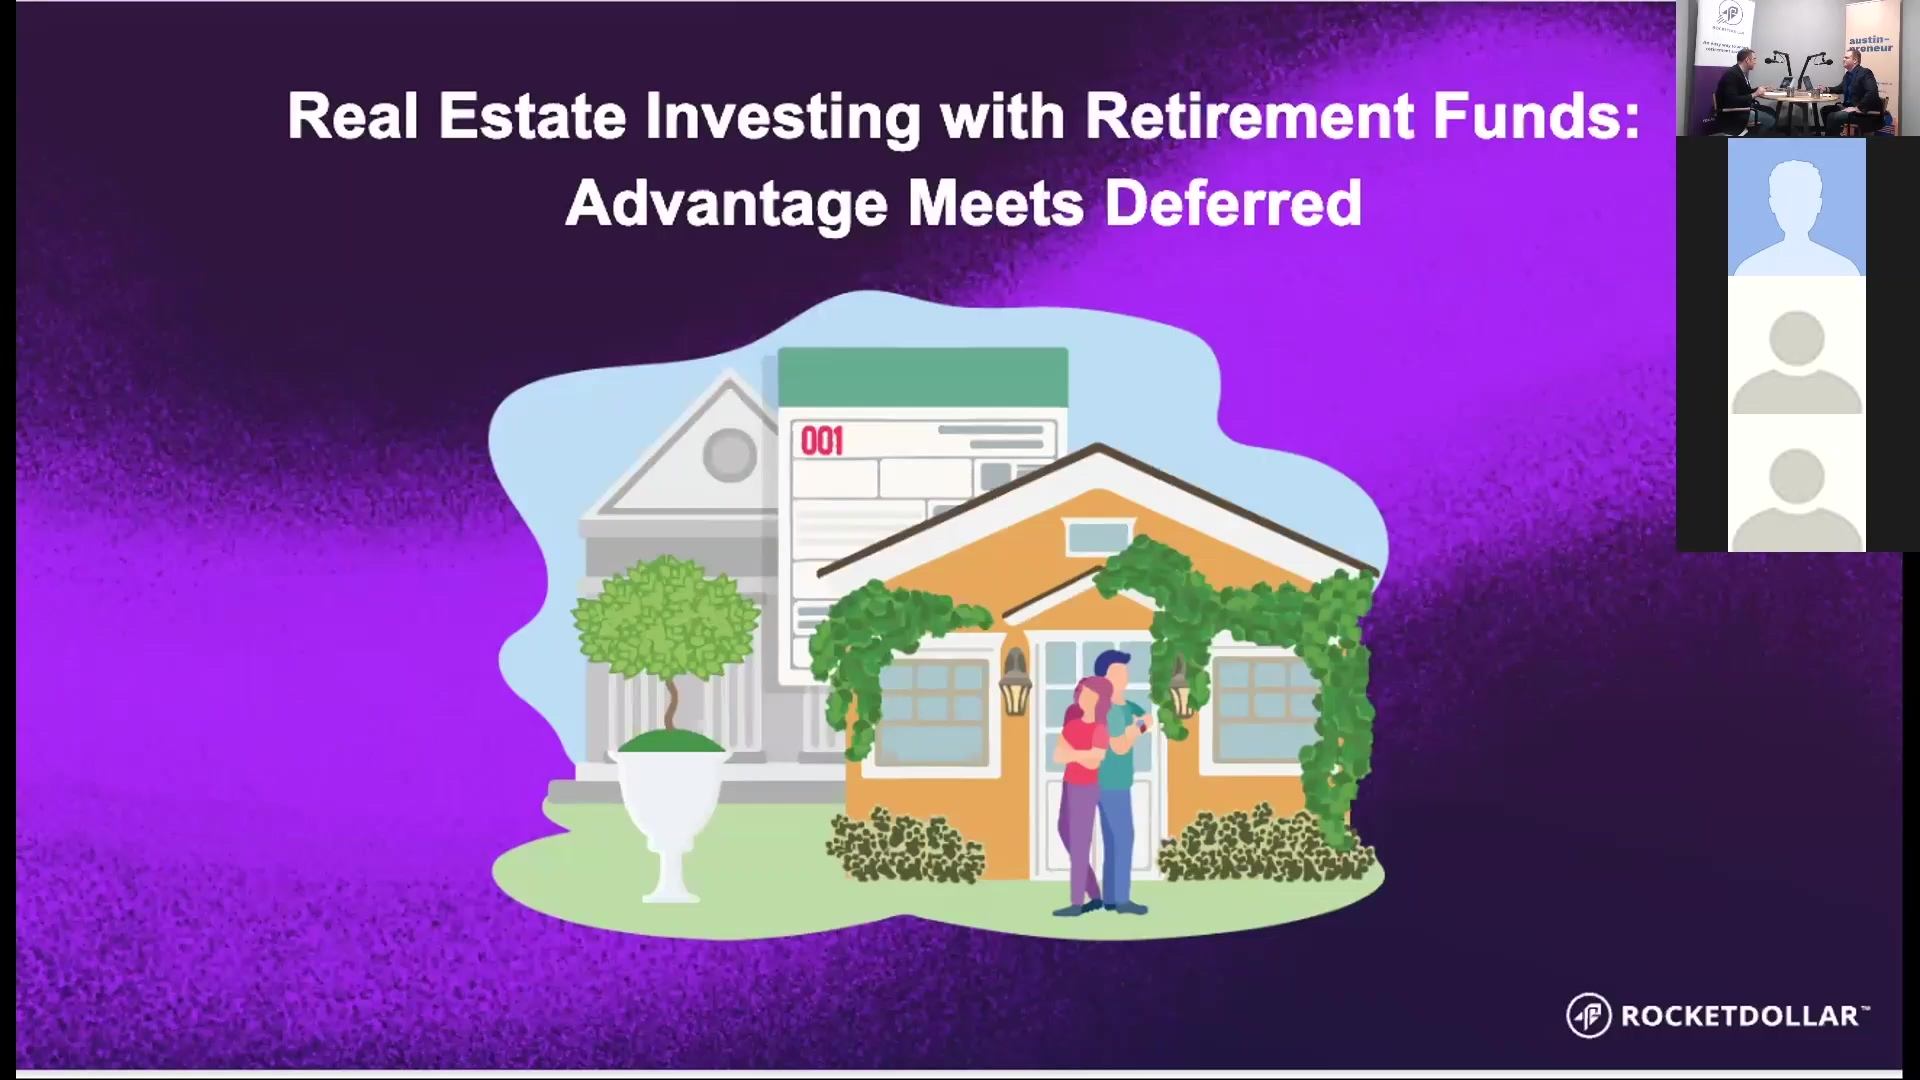 Real Estate Investing With Retirement Funds Webinar Recording